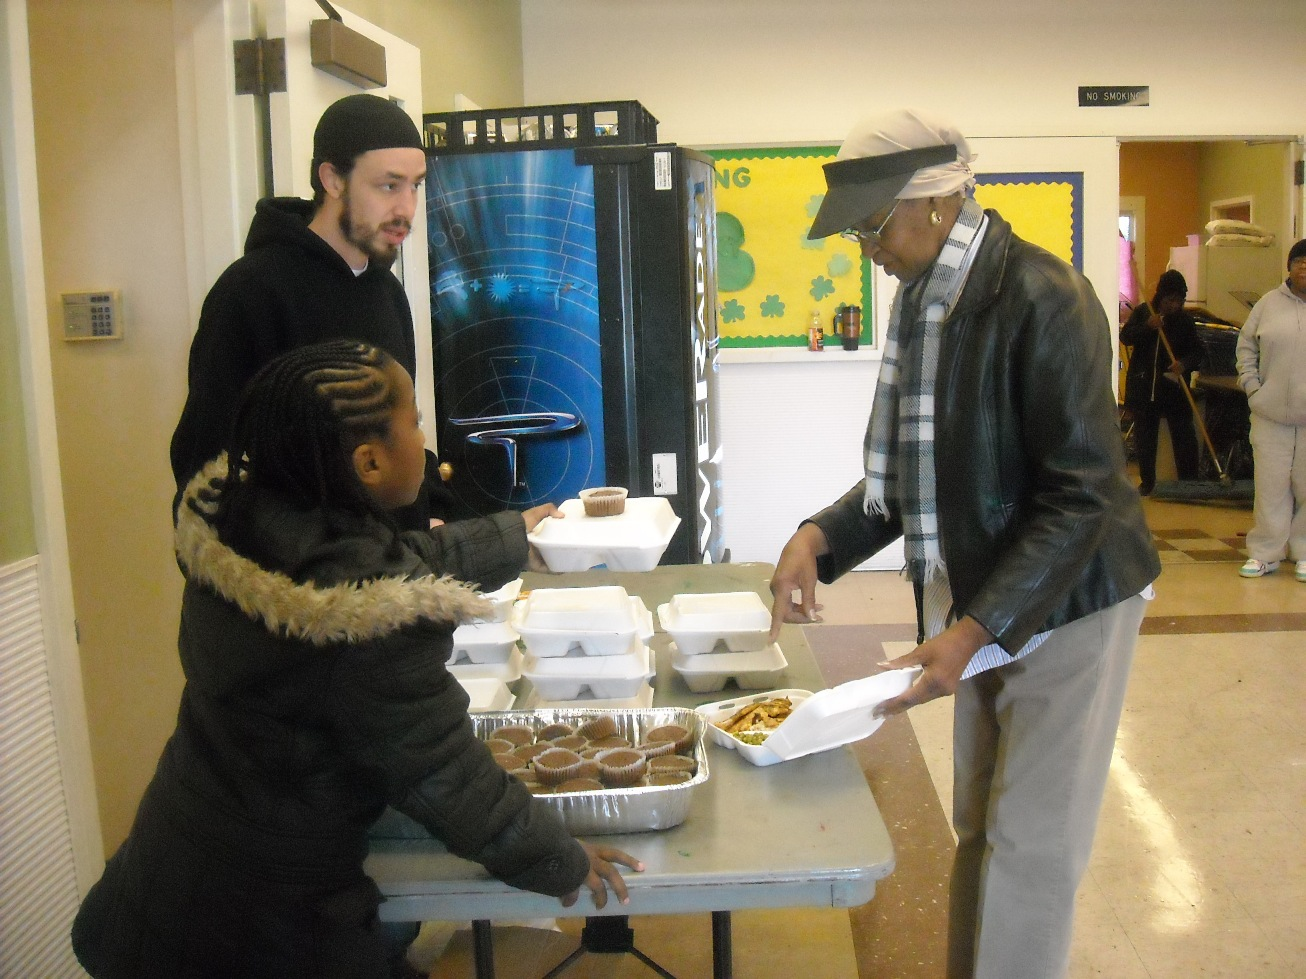 Distributing hot meals and muffins